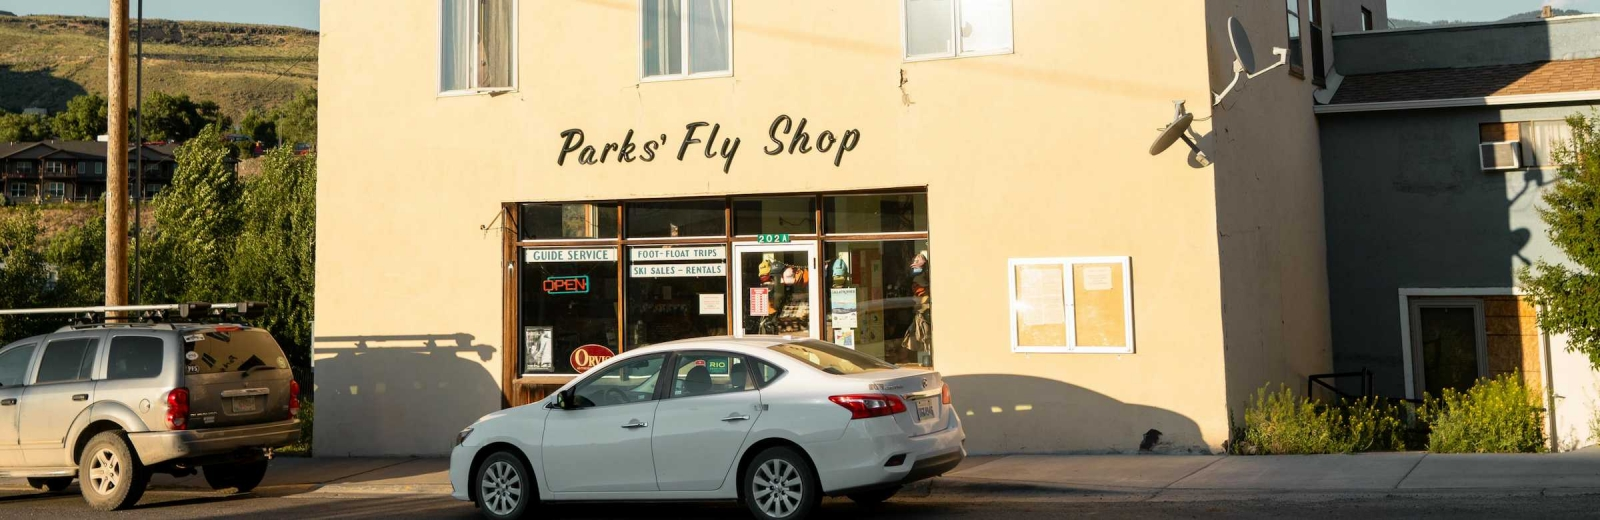 Park's Fly Shop